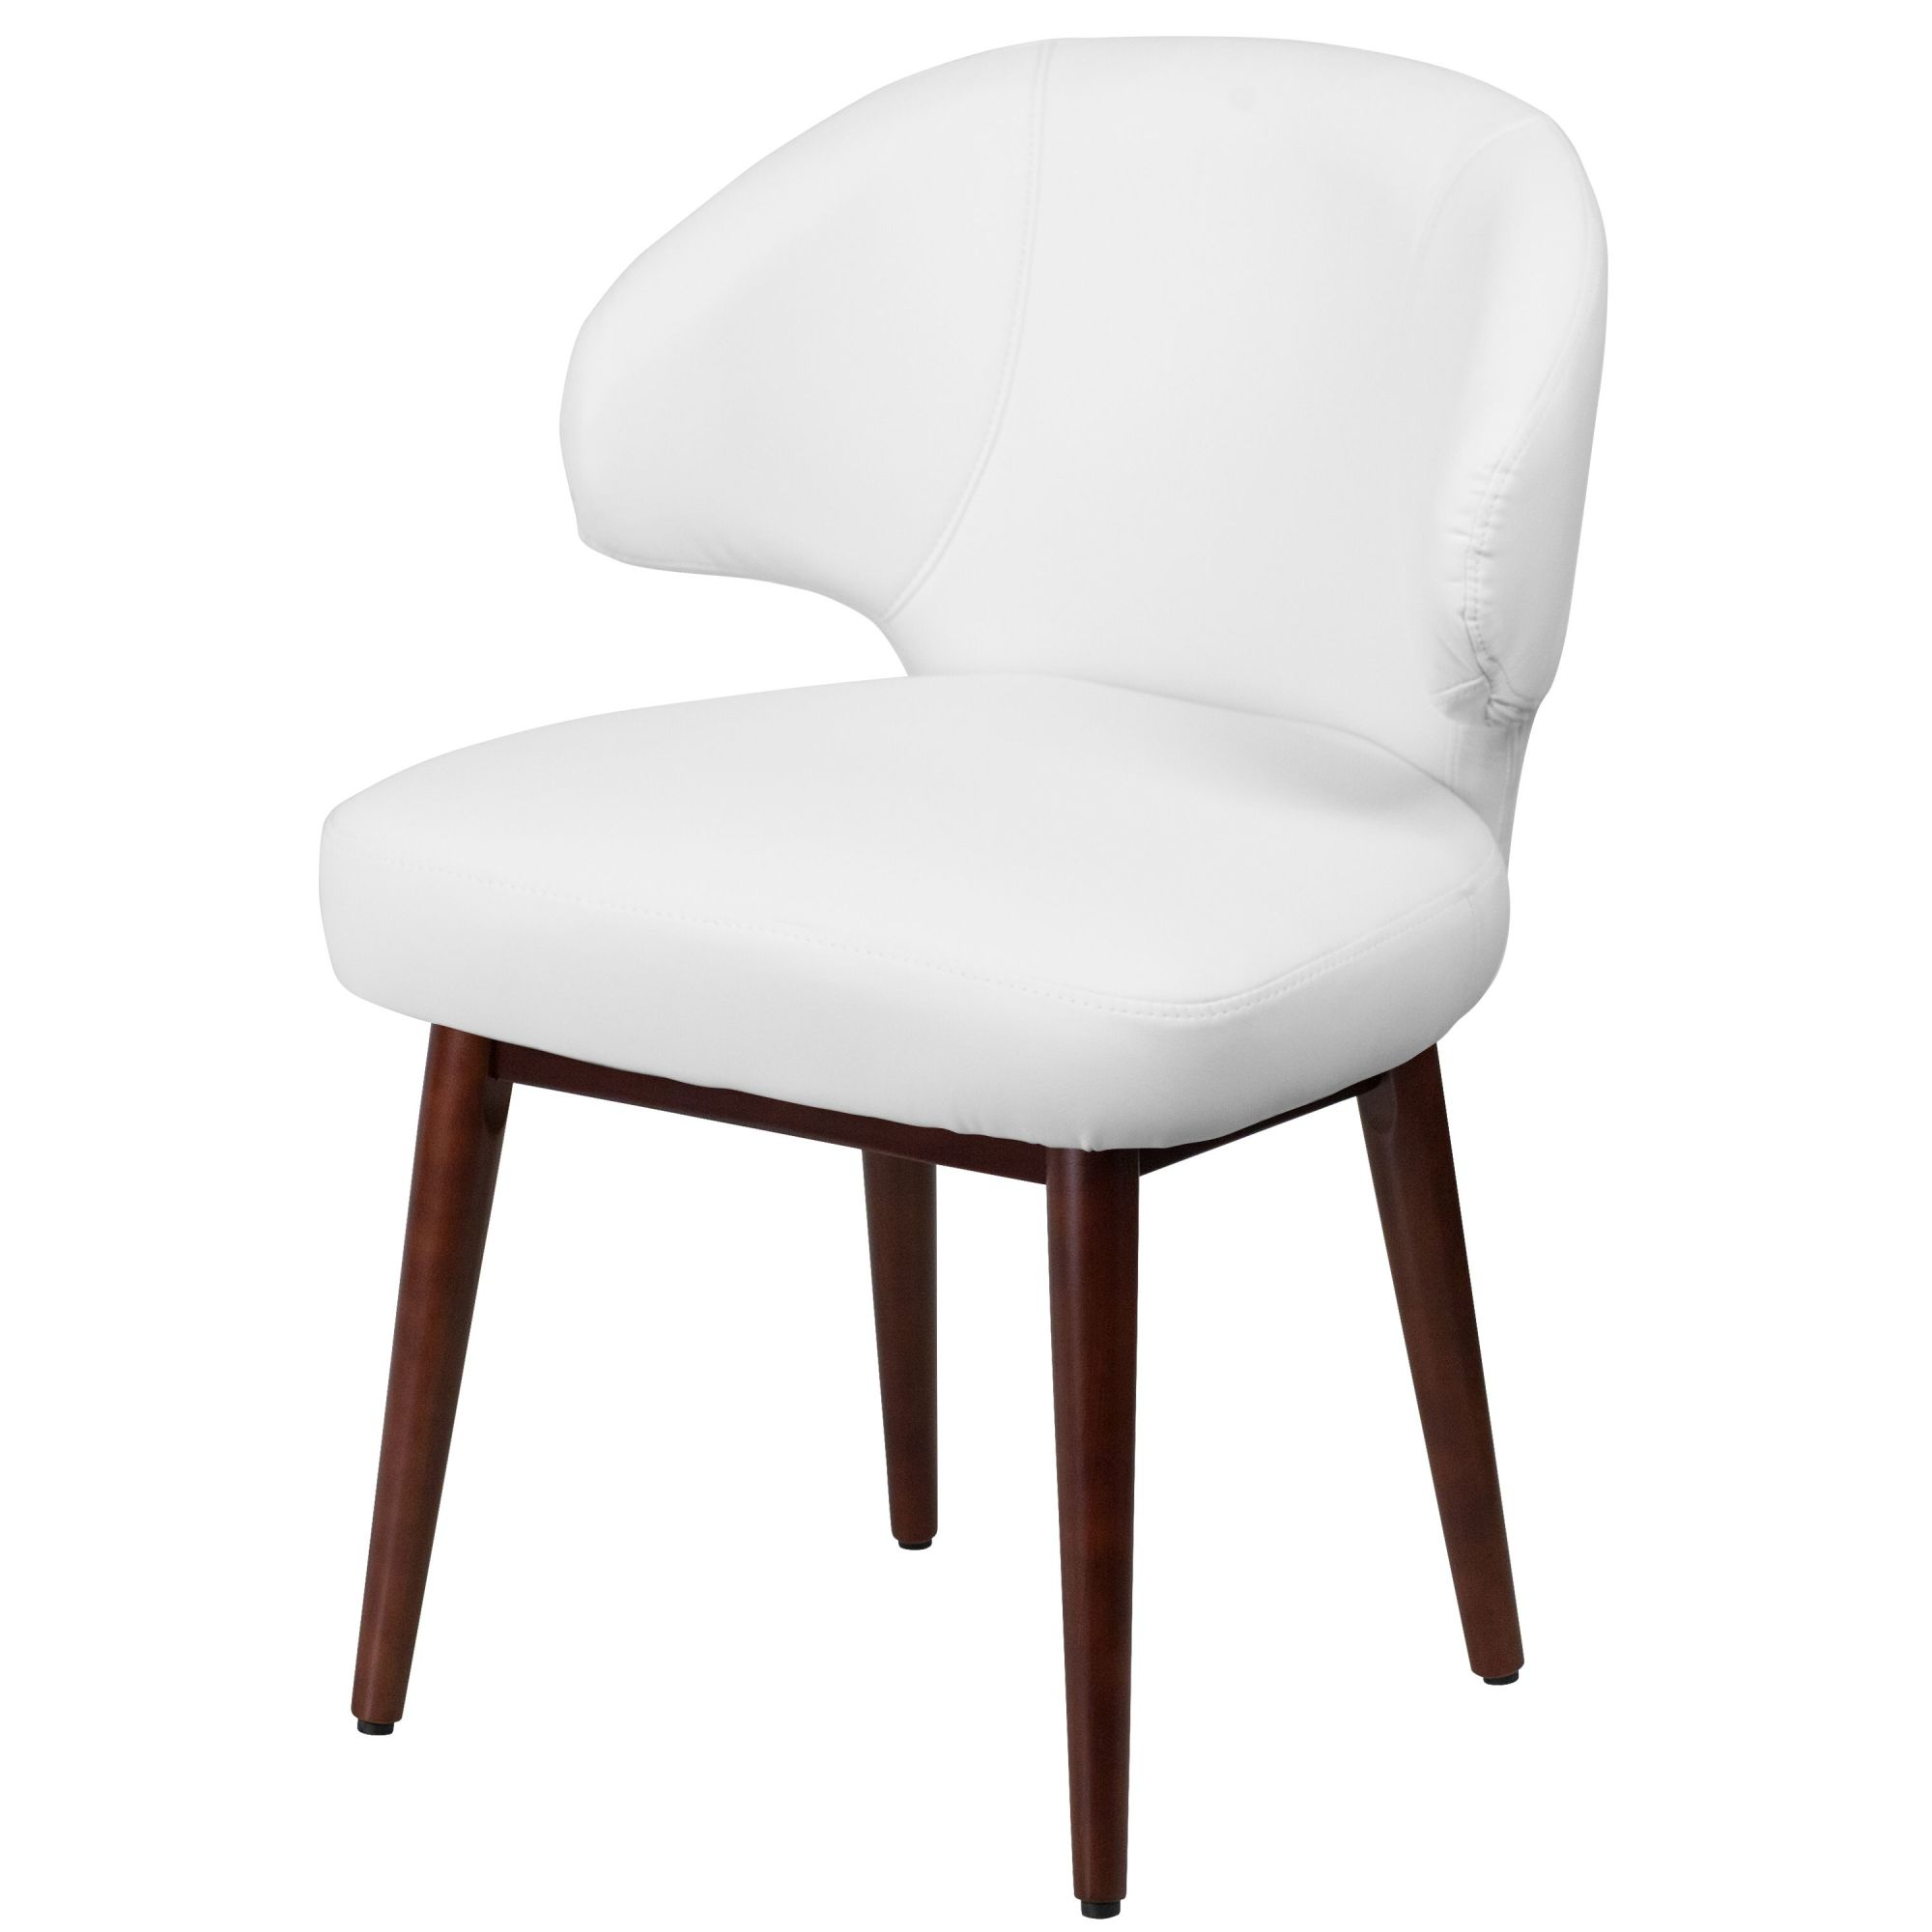 Incredible Details About Delacora Ff Bt 1 23 5W Leather Accent Chair White Ibusinesslaw Wood Chair Design Ideas Ibusinesslaworg